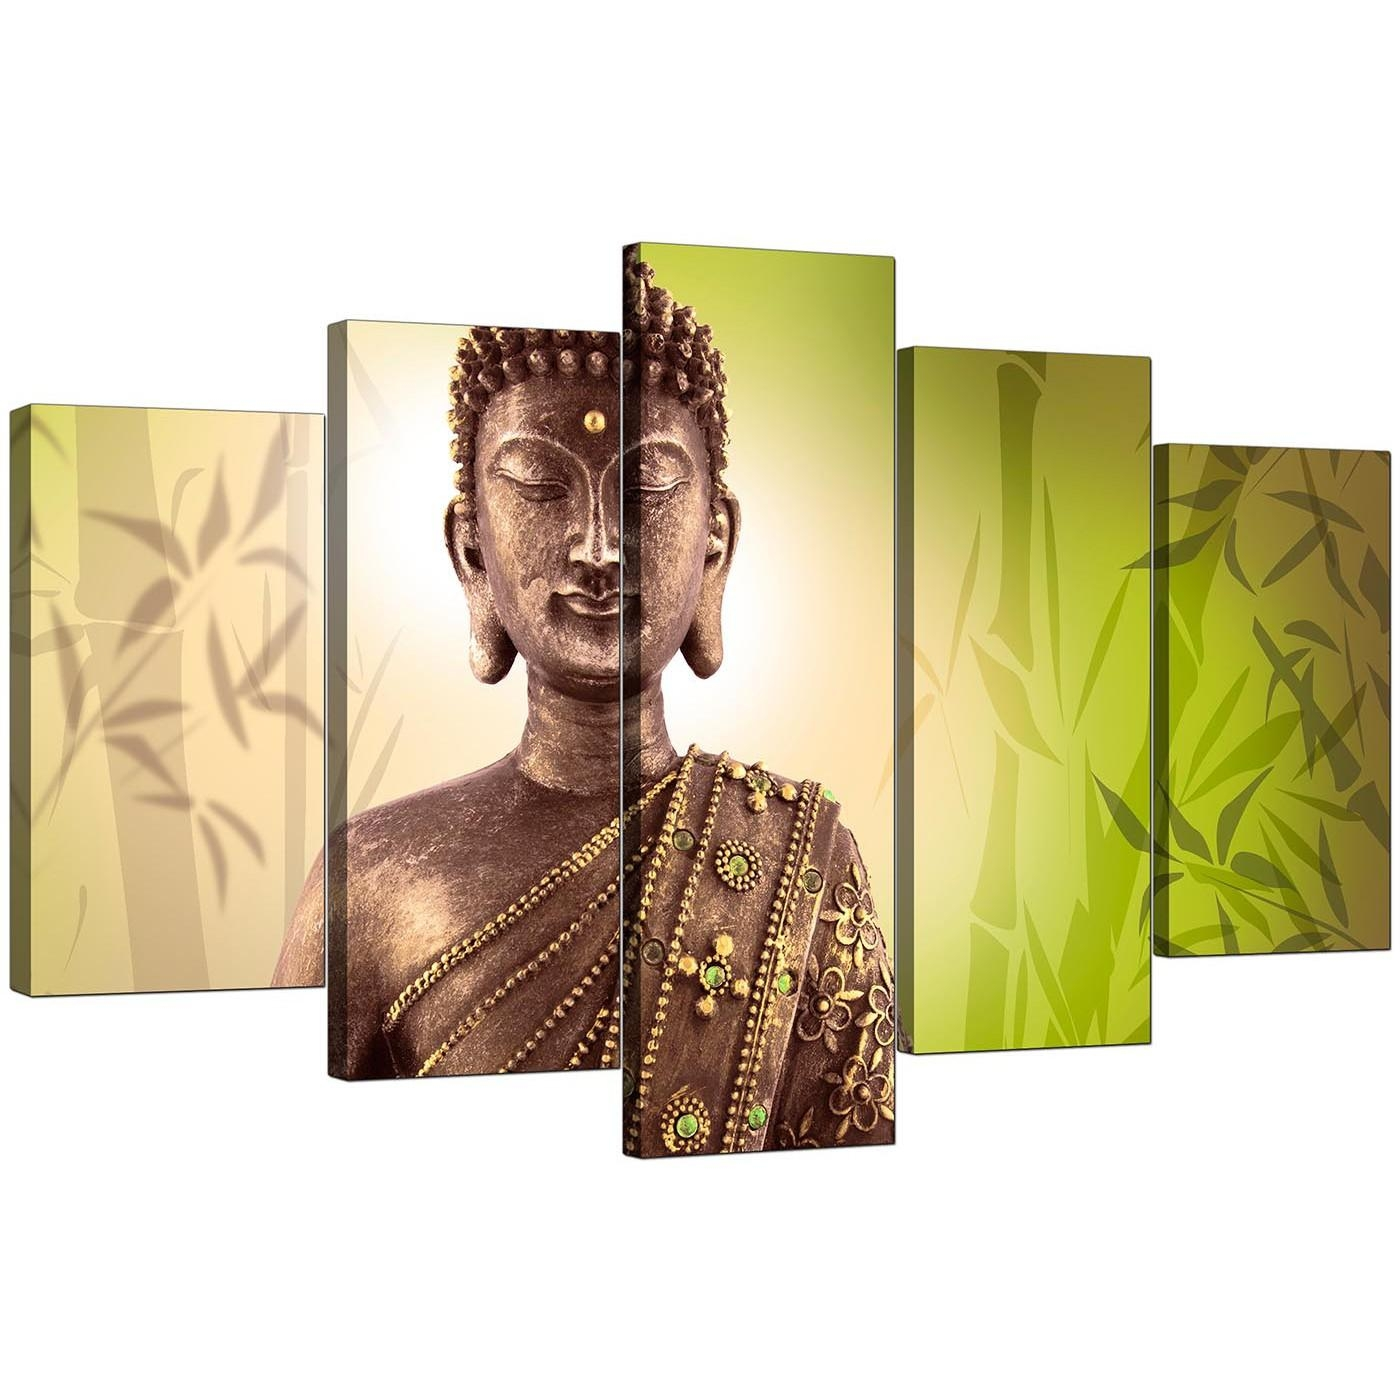 Extra Large Buddha Canvas Wall Art 5 Piece In Green For Large Green Wall Art (Image 7 of 20)